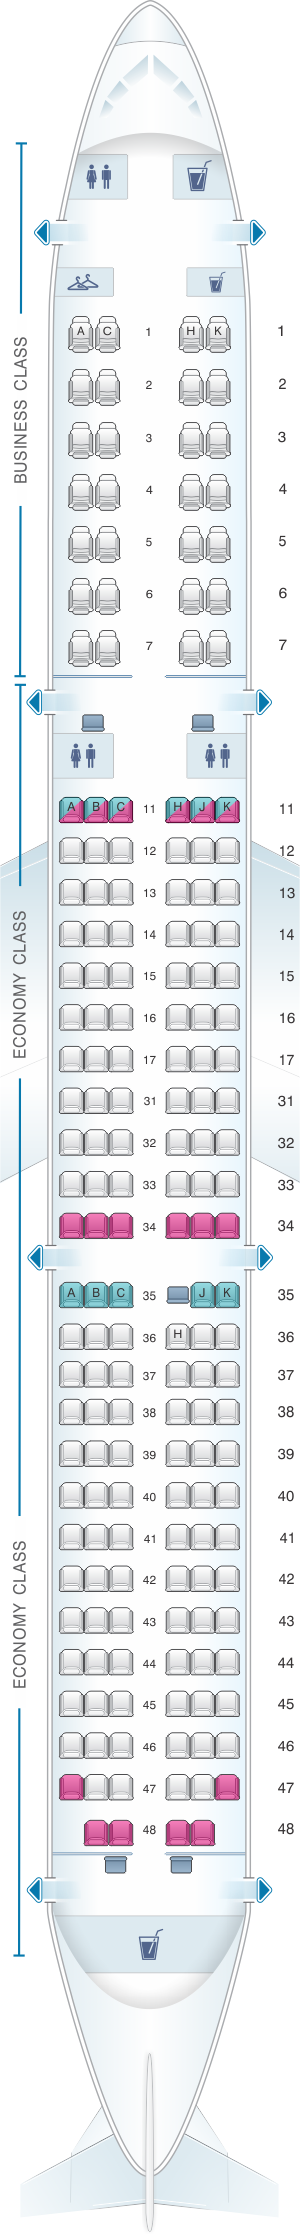 Seat map for Air Astana Airbus A321NEO